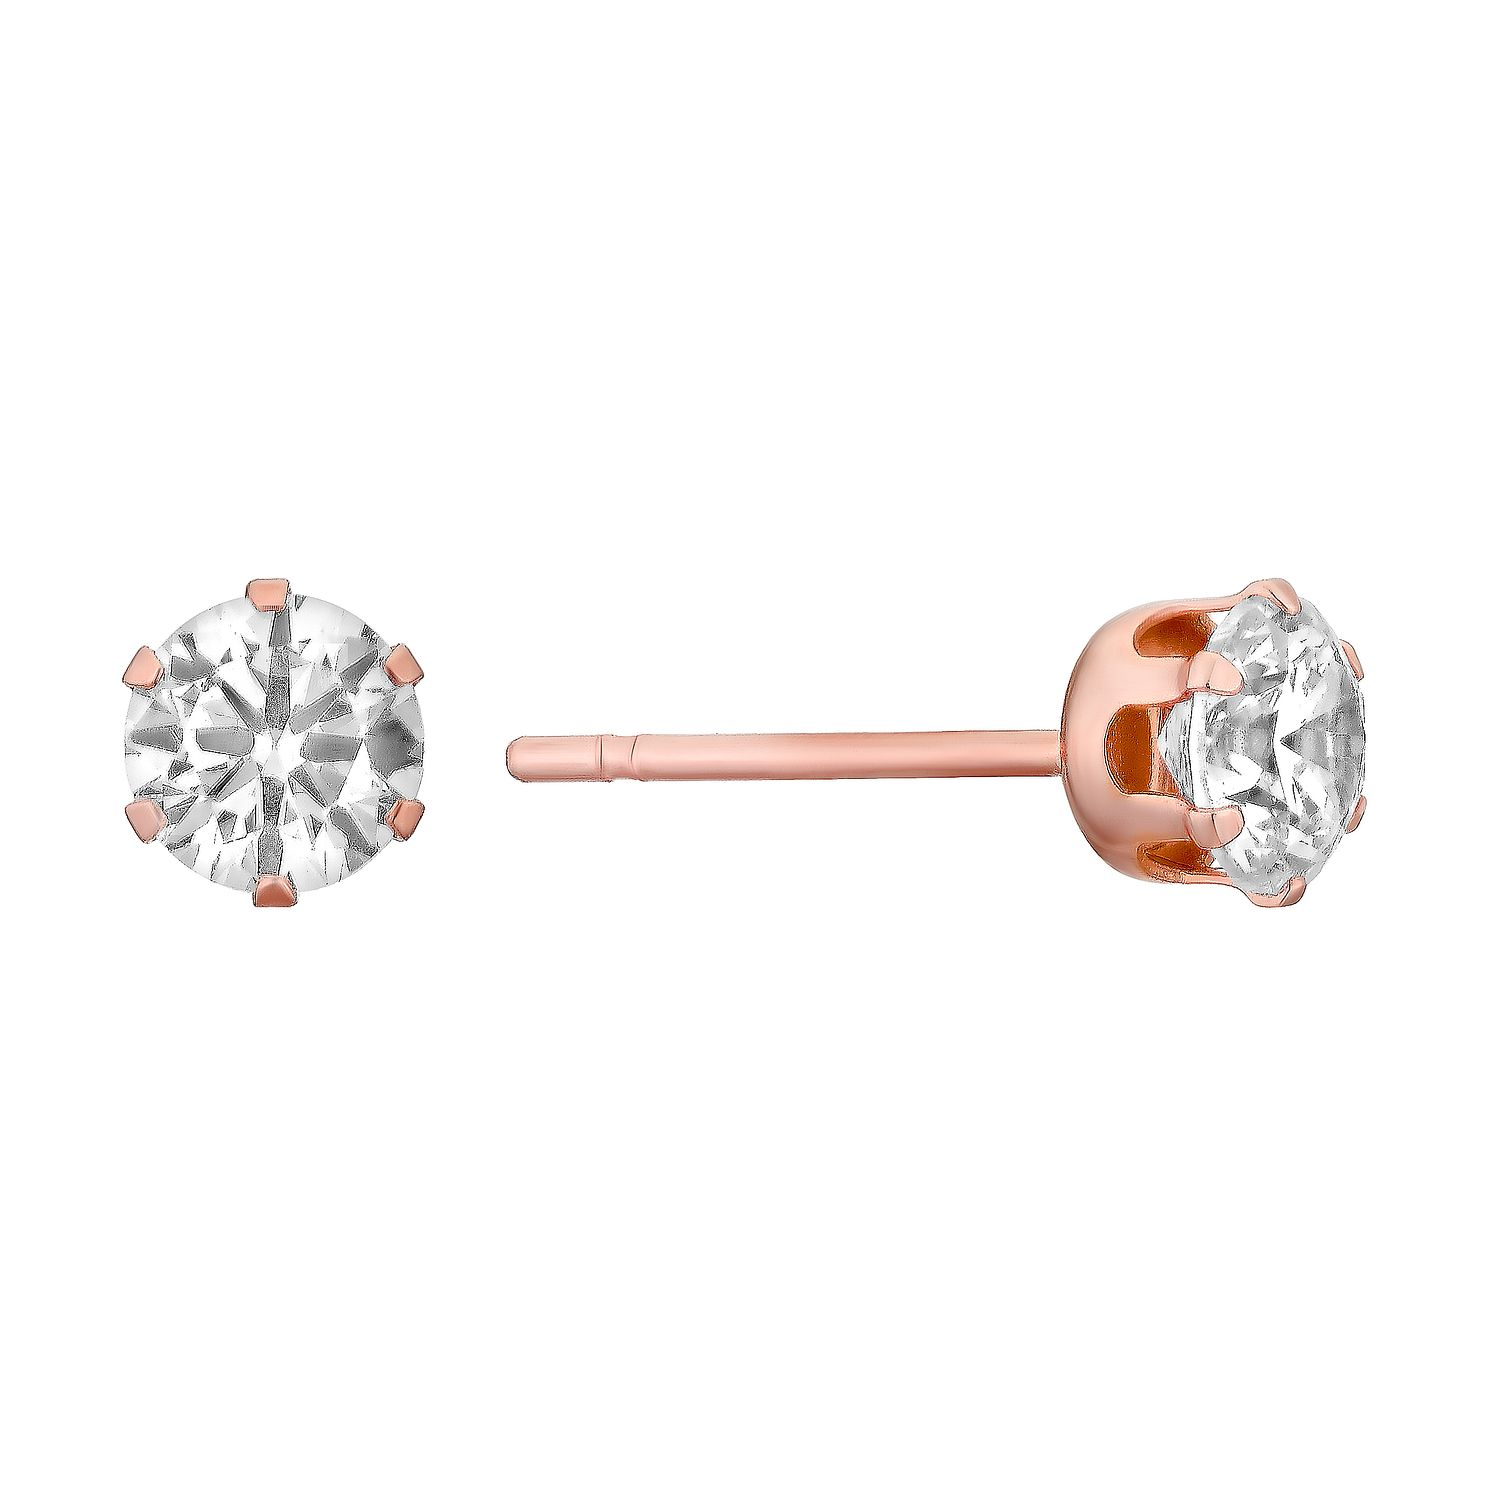 9ct Rose Gold & Cubic Zirconia 4mm Round Stud Earrings - Product number 3060462